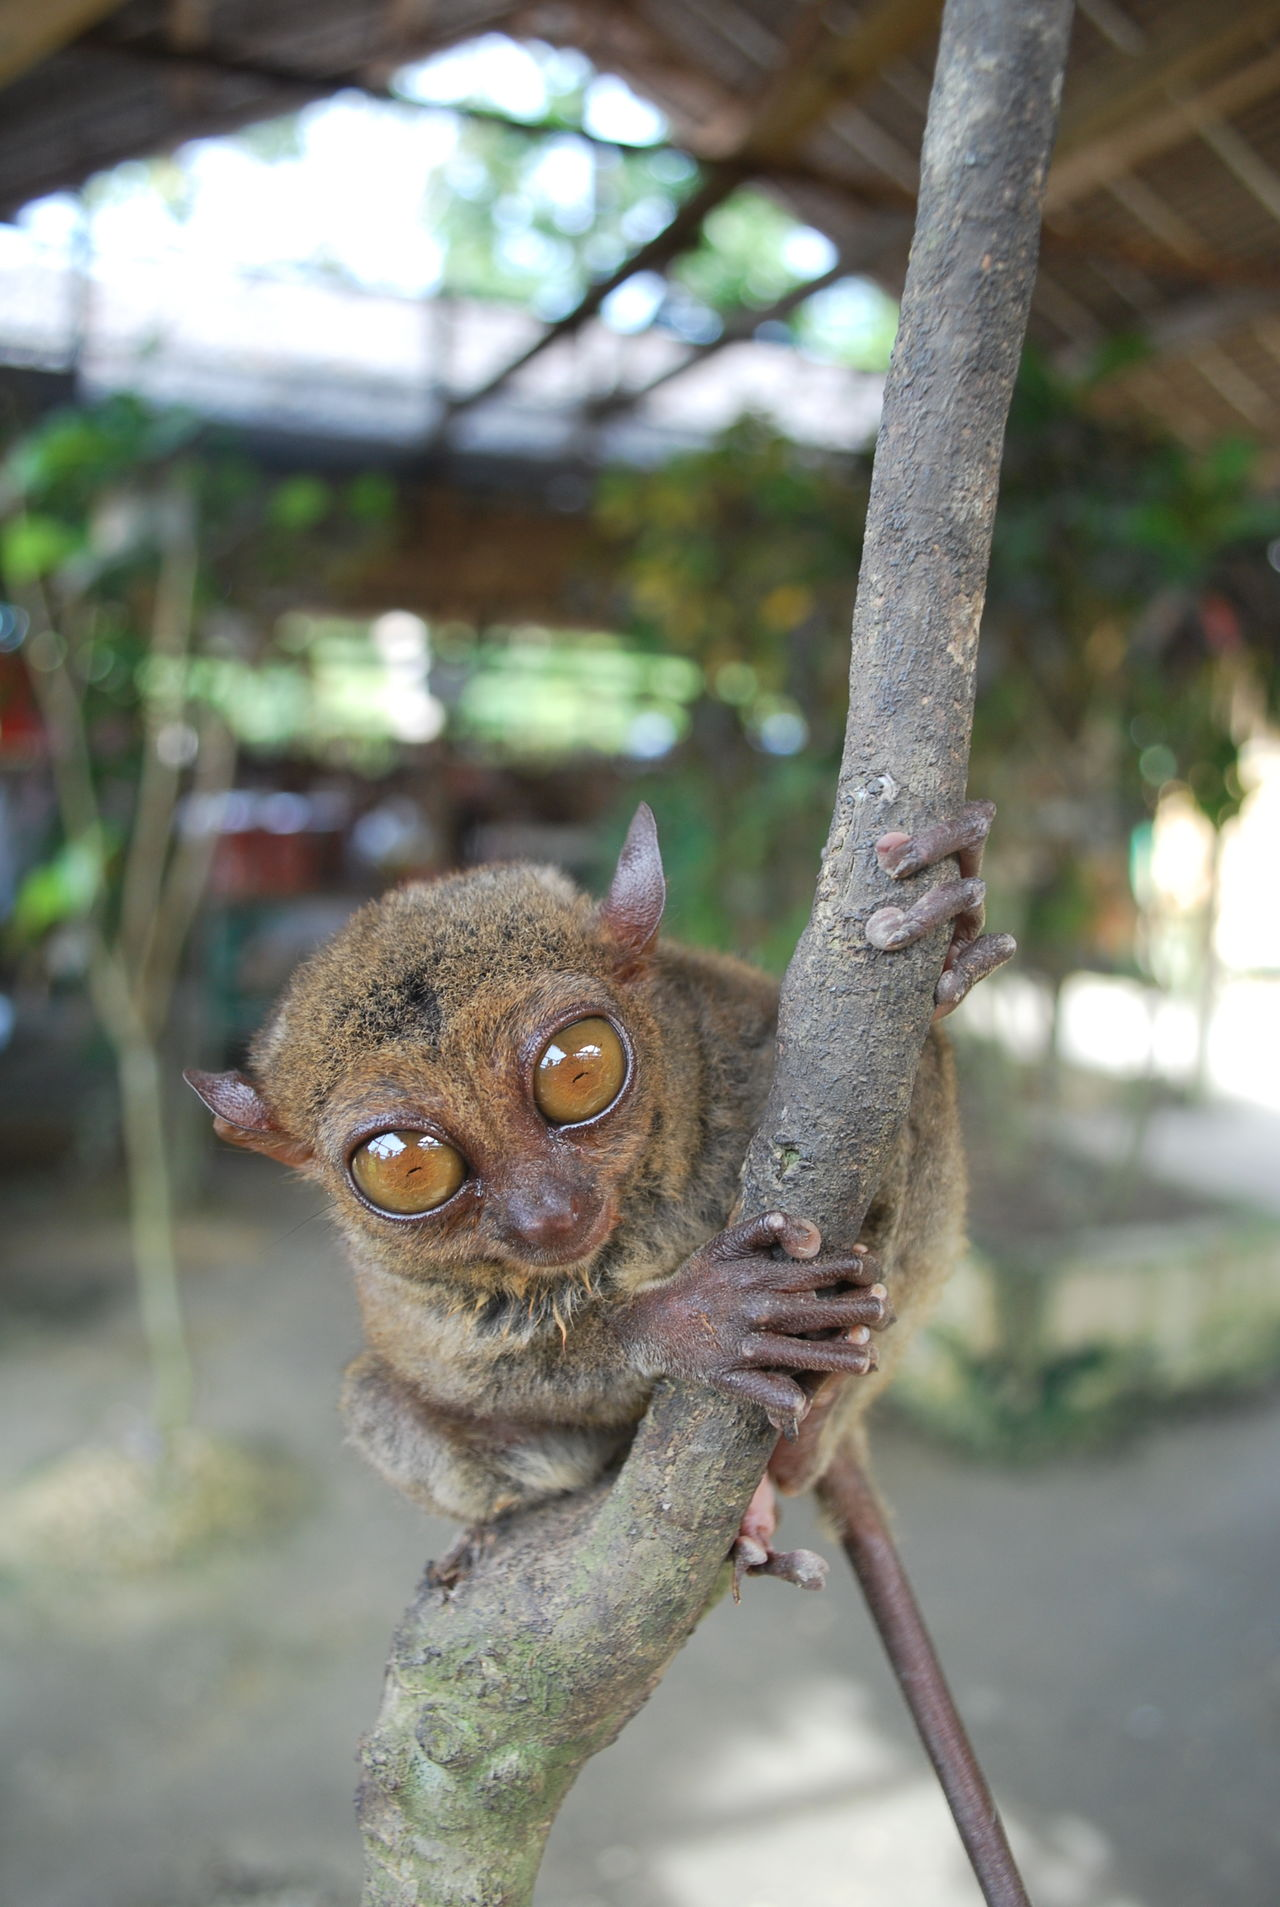 Tarsier Animal Animal Conservation Animal Themes Animals Animals In The Wild Close-up Day Domestic Animals Endangered  Endangered Animals Endangered Species Focus On Foreground Looking At Camera Mammal Nature No People One Animal Outdoors Portrait Tarsier Tree